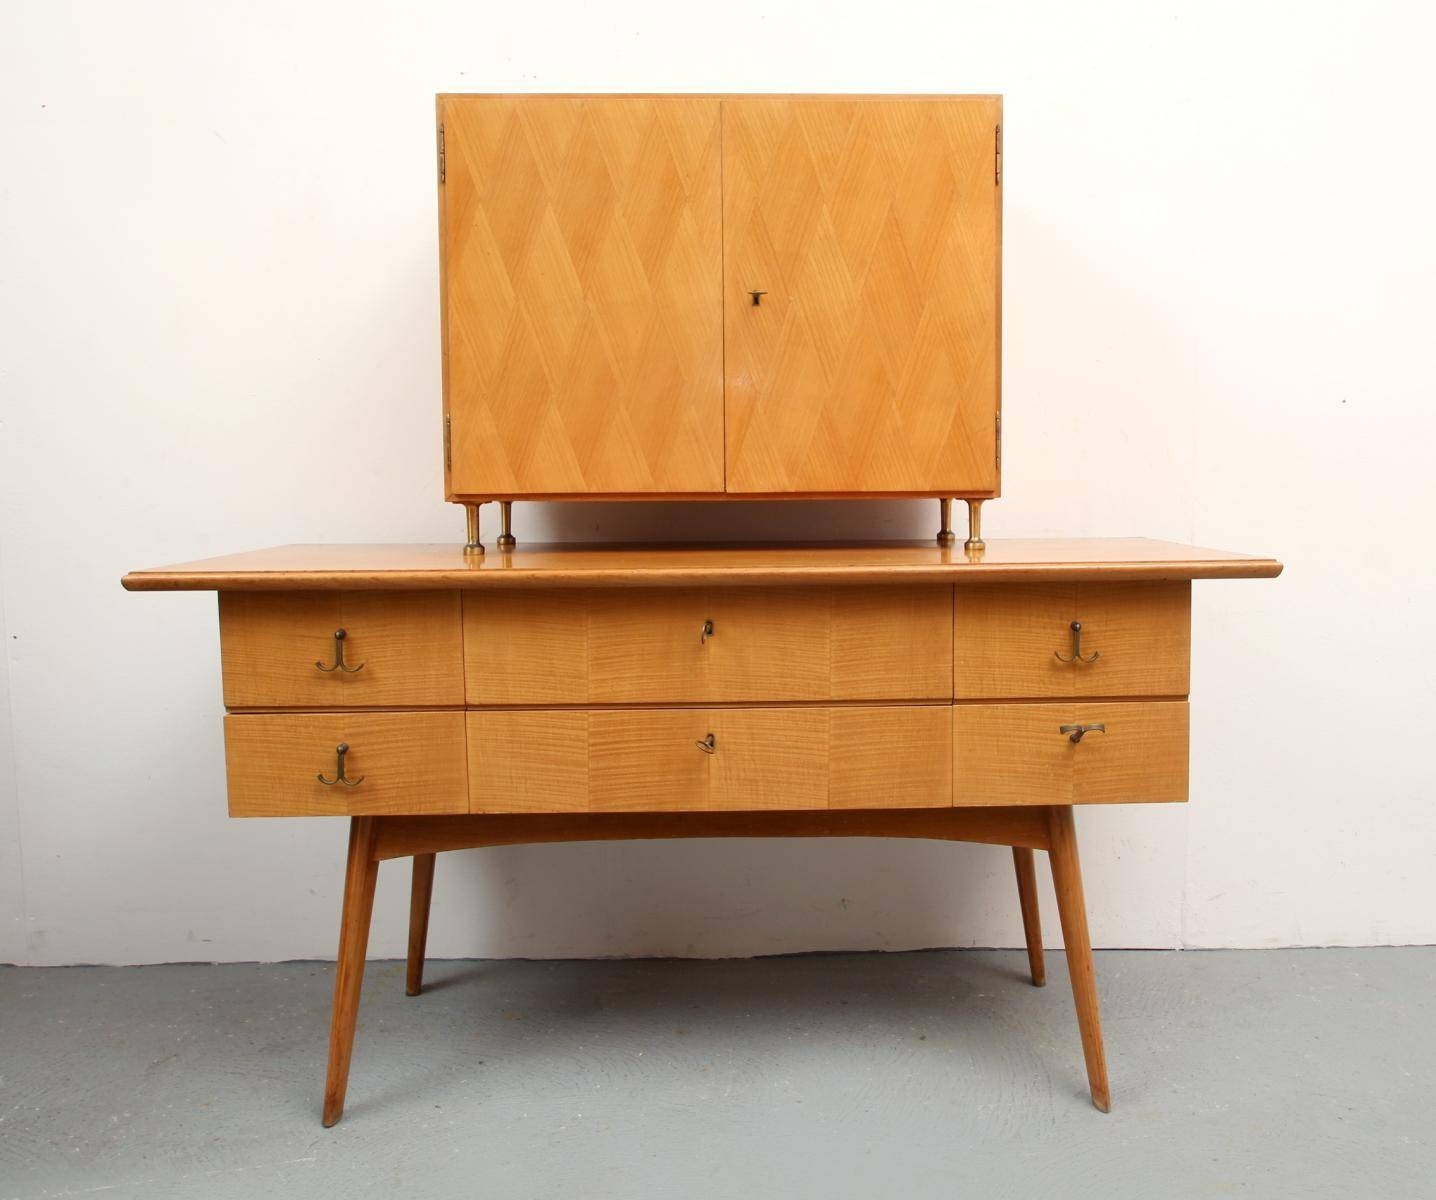 Cherry Wood Sideboard And Bar Cabinet, 1950s For Sale At Pamono Intended For Most Popular Sideboard Bar Cabinet (View 5 of 15)